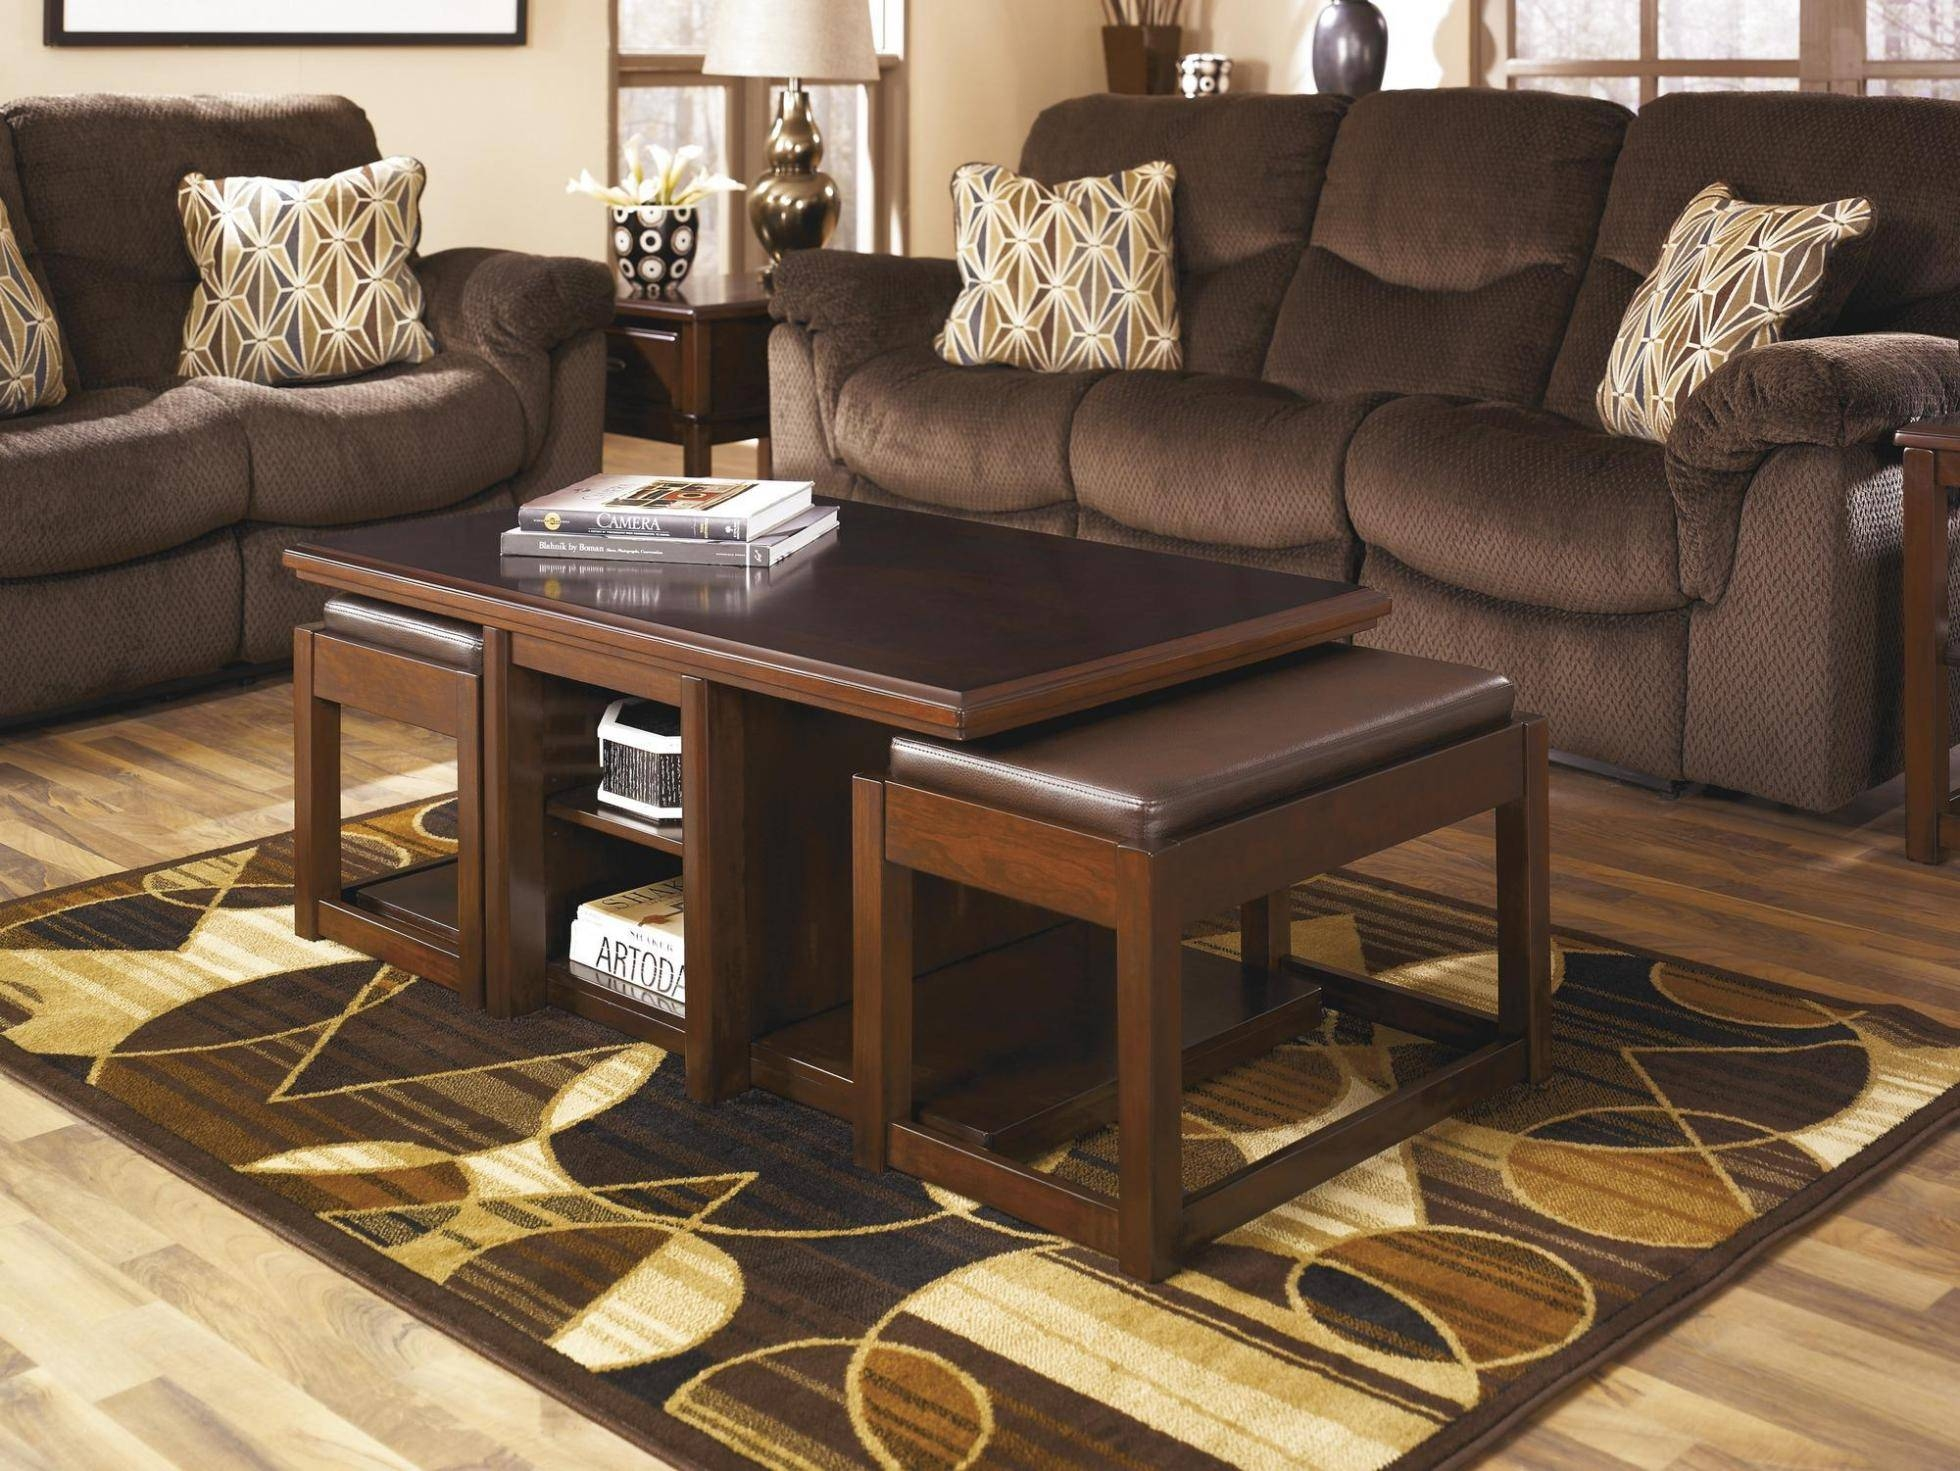 Furniture: Luxury Coffee Table With Stools For Living Room Within Coffee Table With Stools (View 22 of 30)